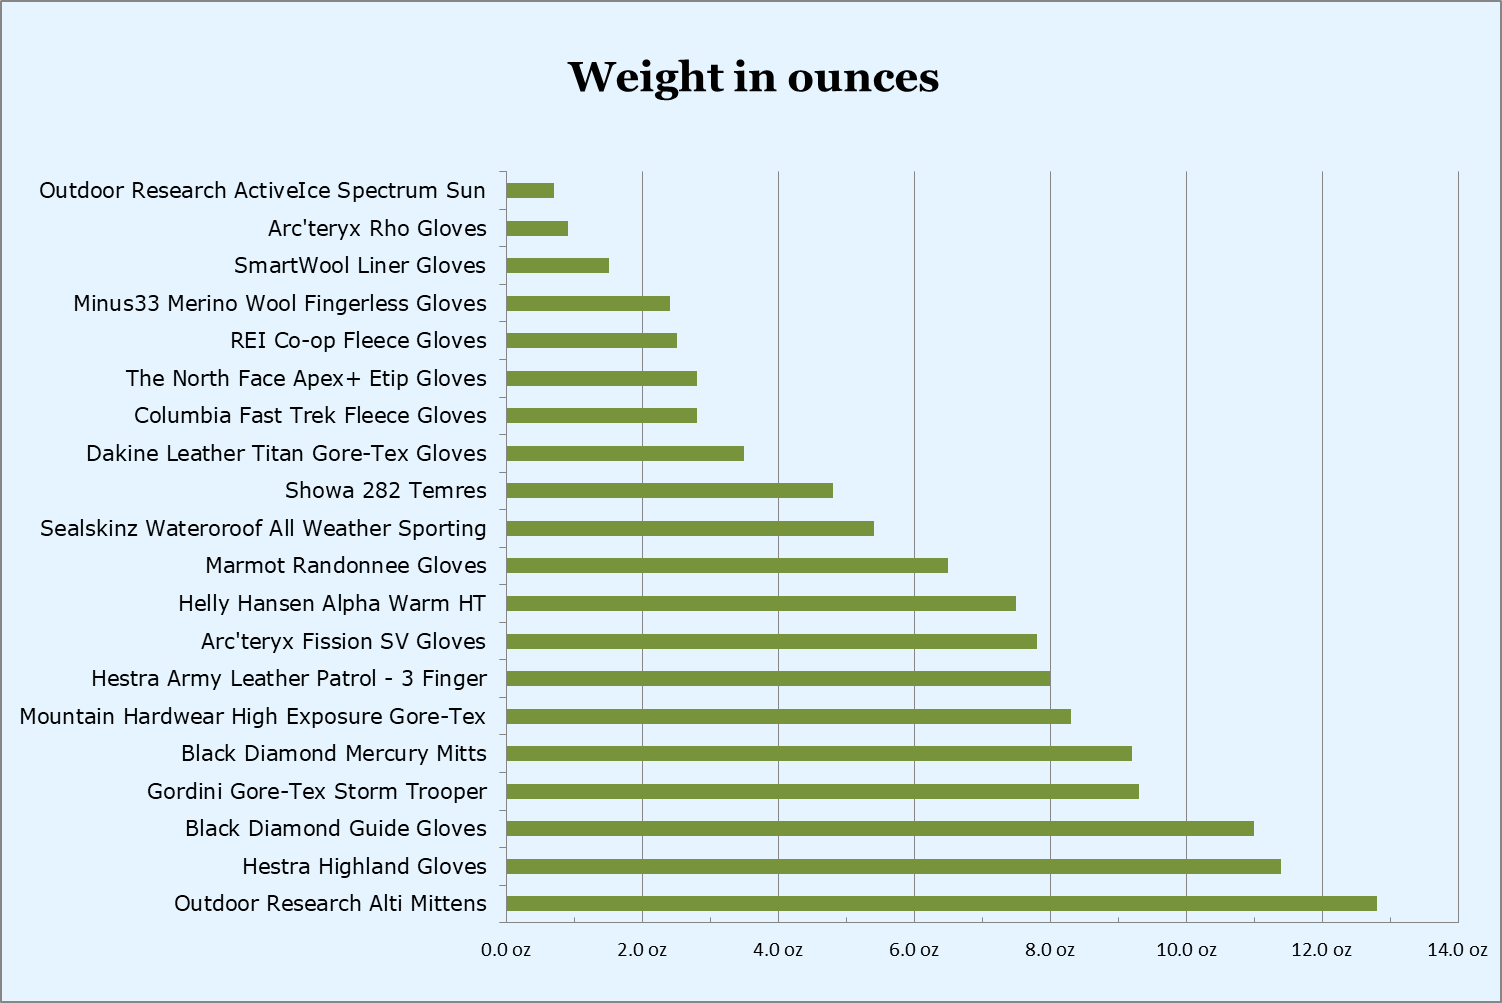 Hiking gloves weight in ounces - comparison